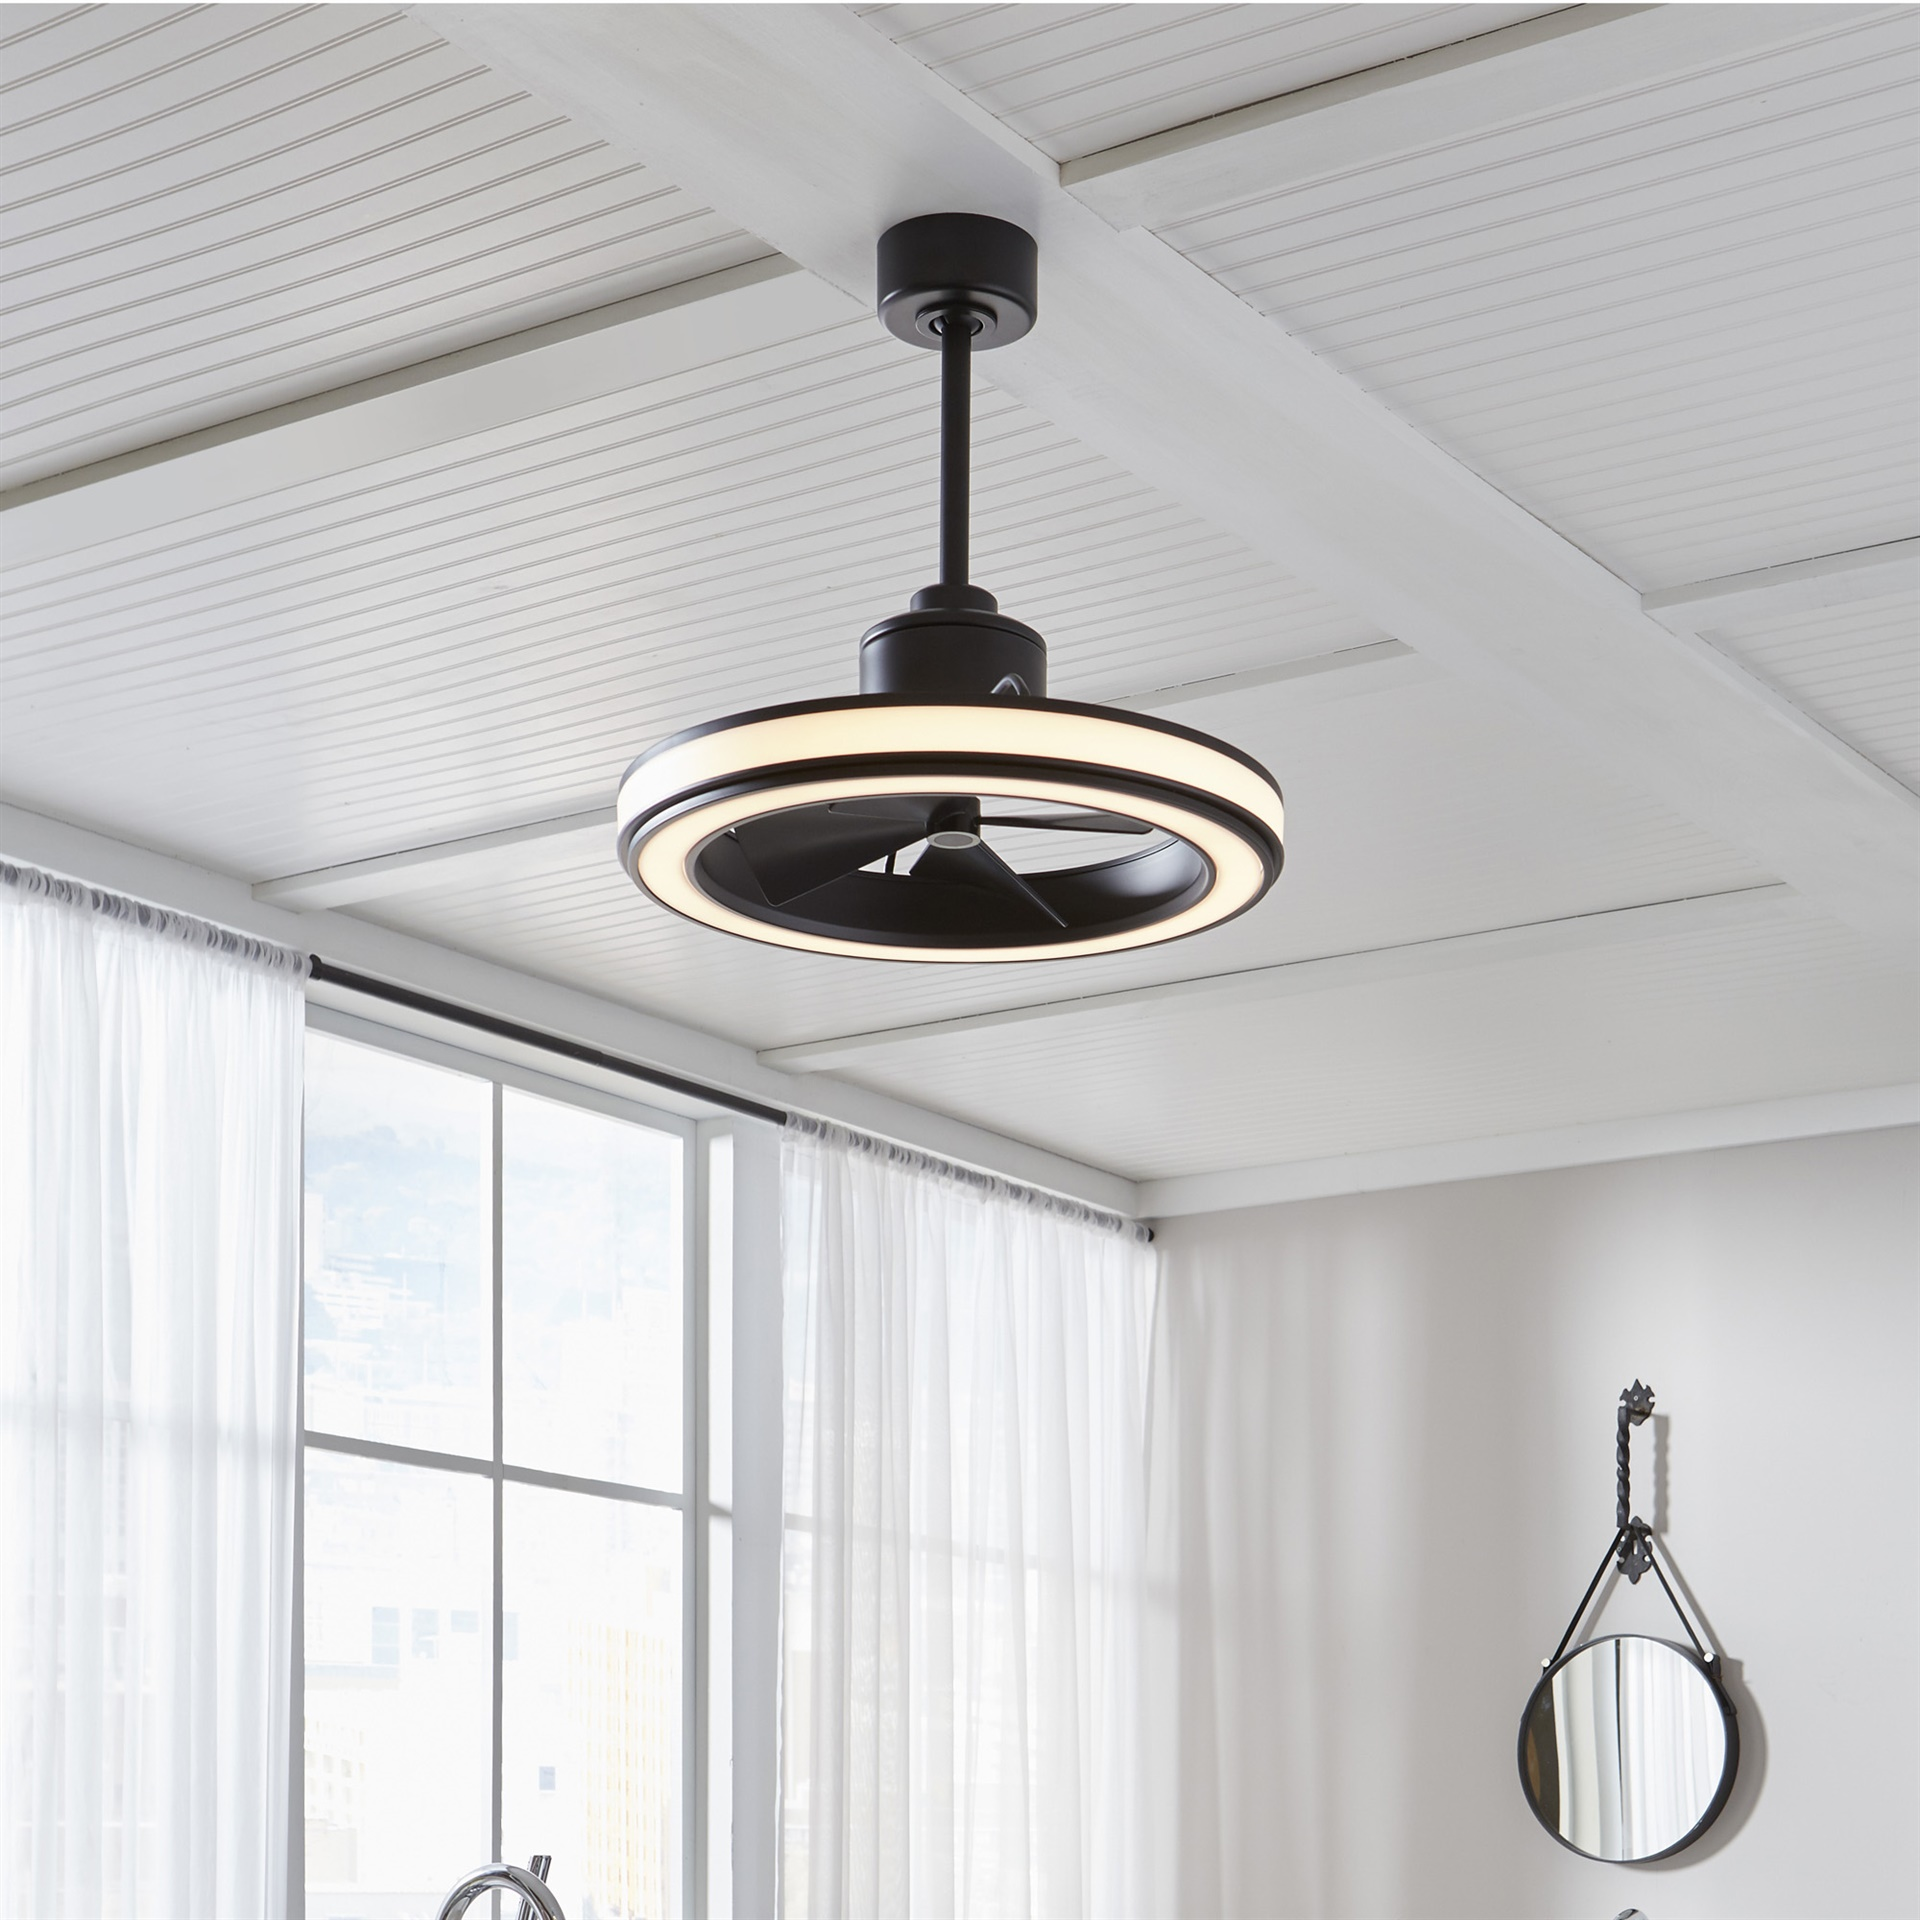 Gleam Beckwith Ceiling Fan